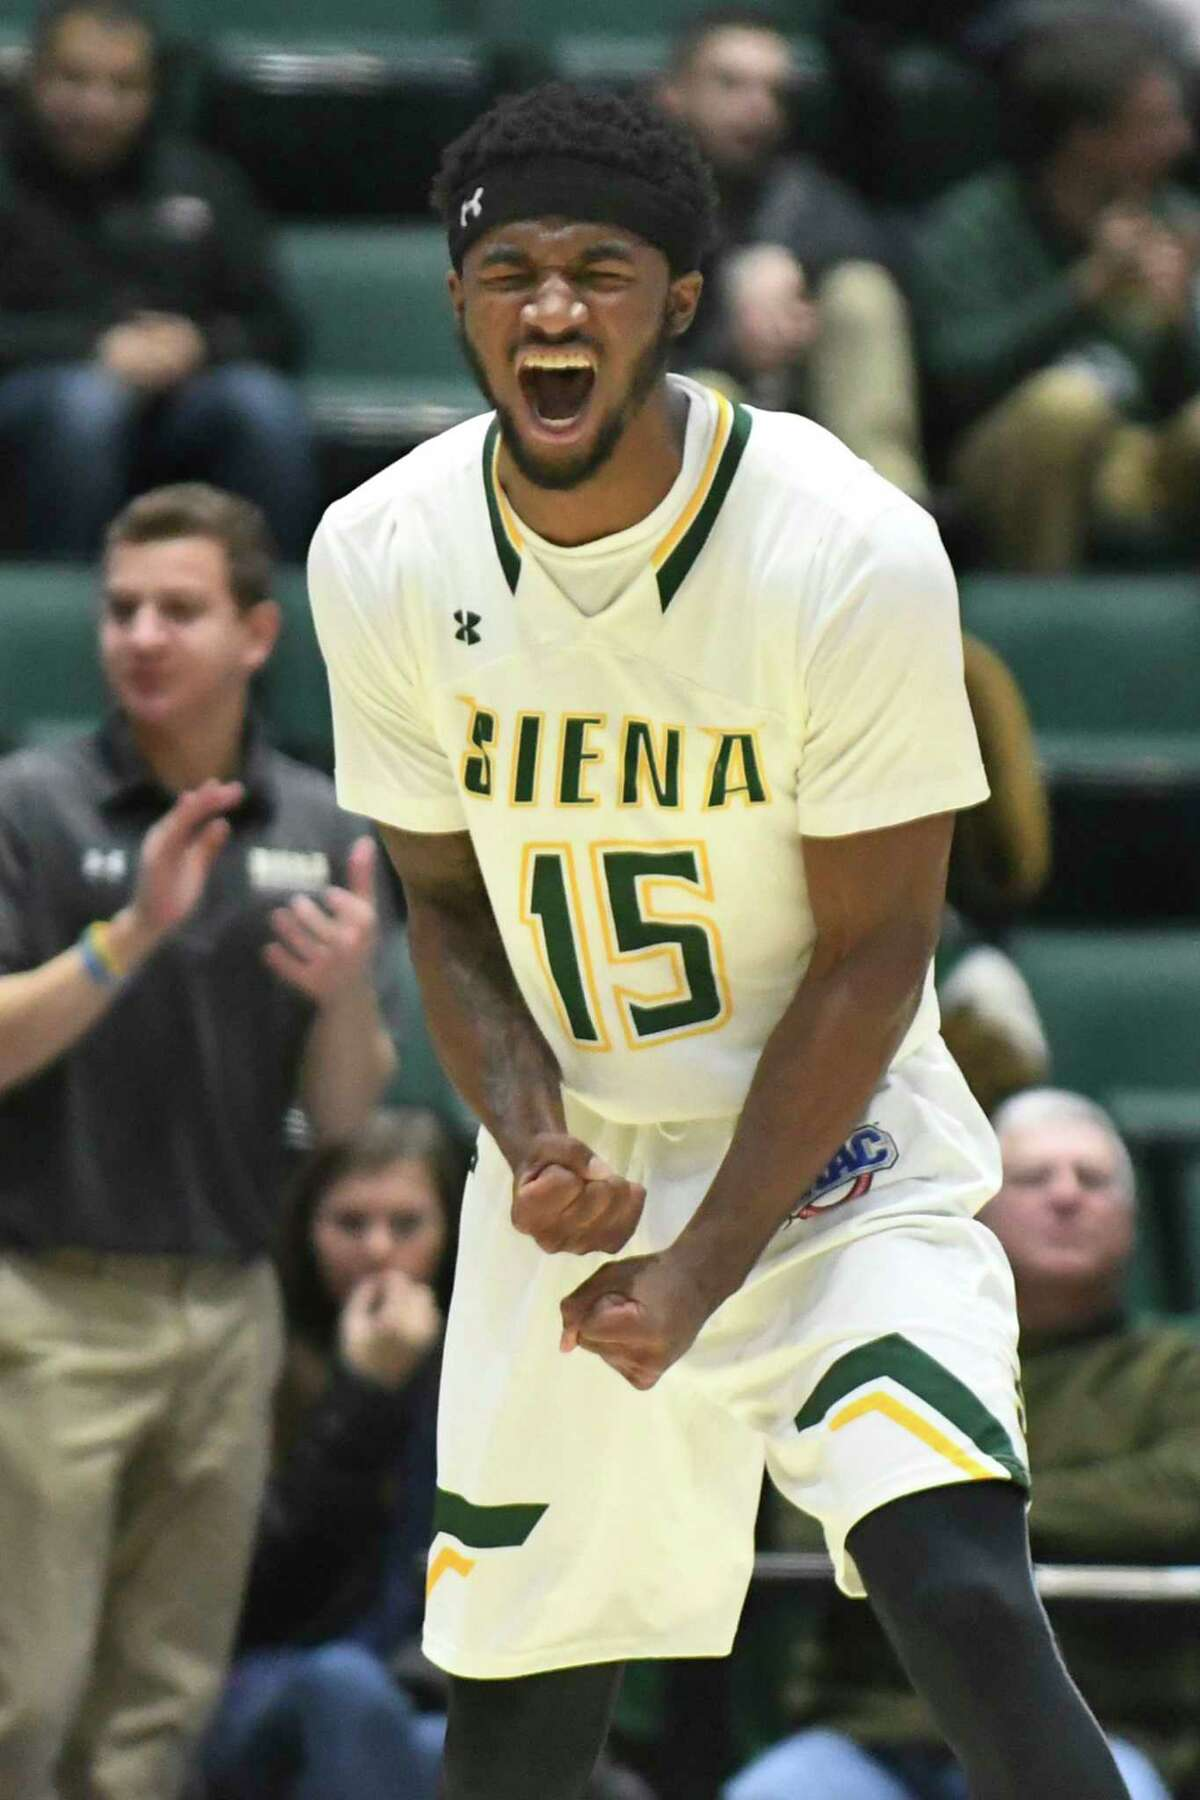 Siena's Nico Clareth celebrates a play during their basketball game against Bucknell on Saturday, Dec. 17, 2016, at Glens Falls Civic Center in Glens Falls, N.Y. (Cindy Schultz / Times Union)